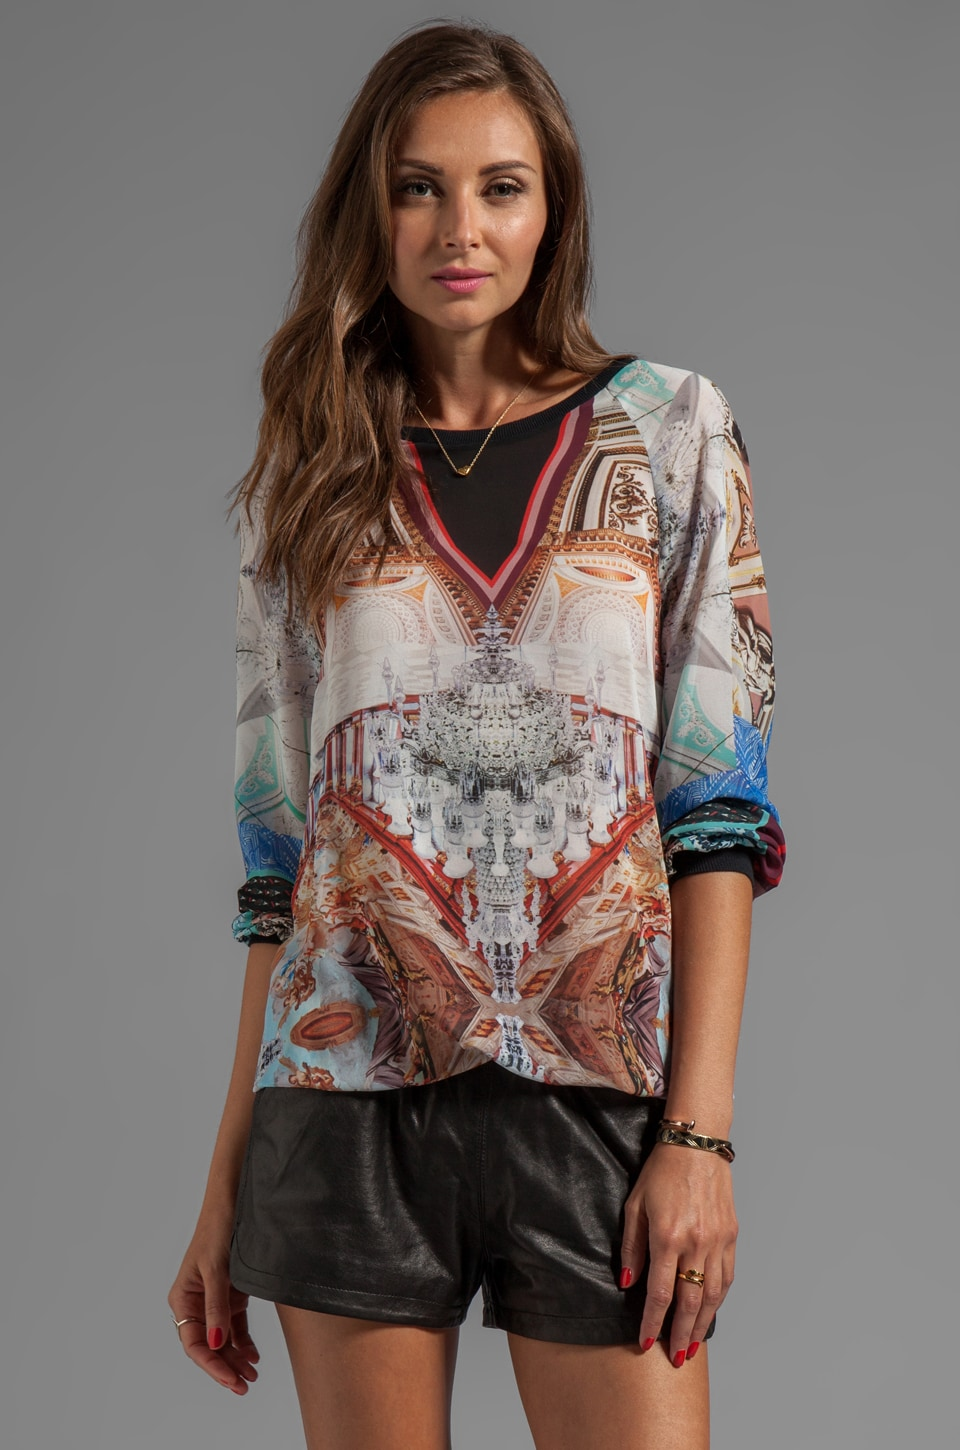 Clover Canyon Royal Palace Interior Top in Multi